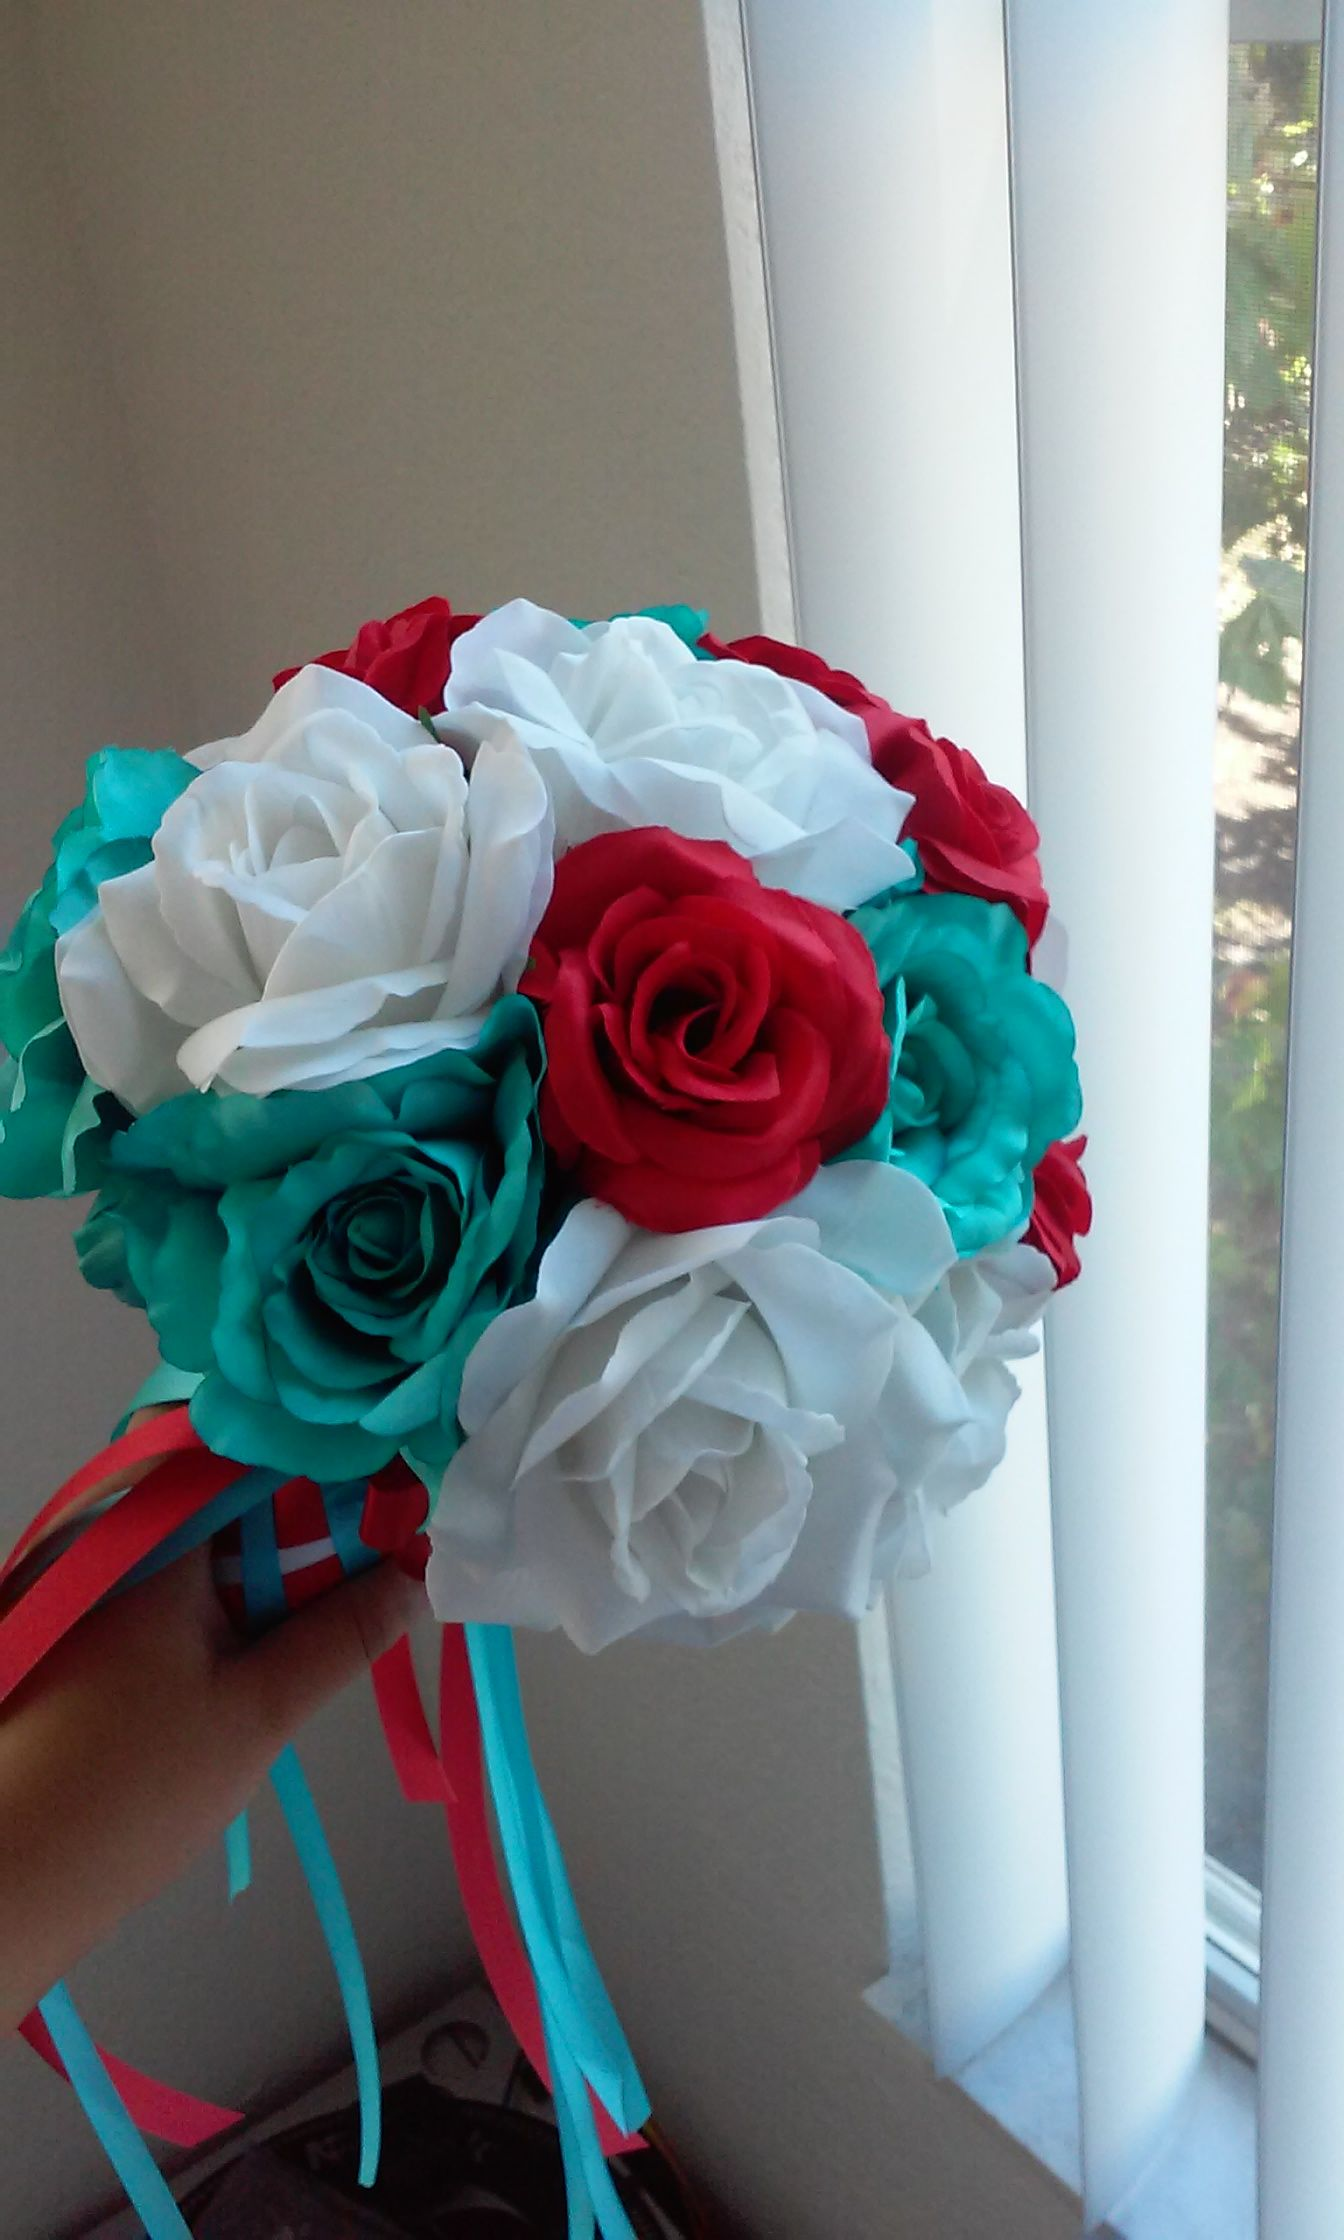 aqua and red weddings | Turquoise and Red Wedding decorations ...